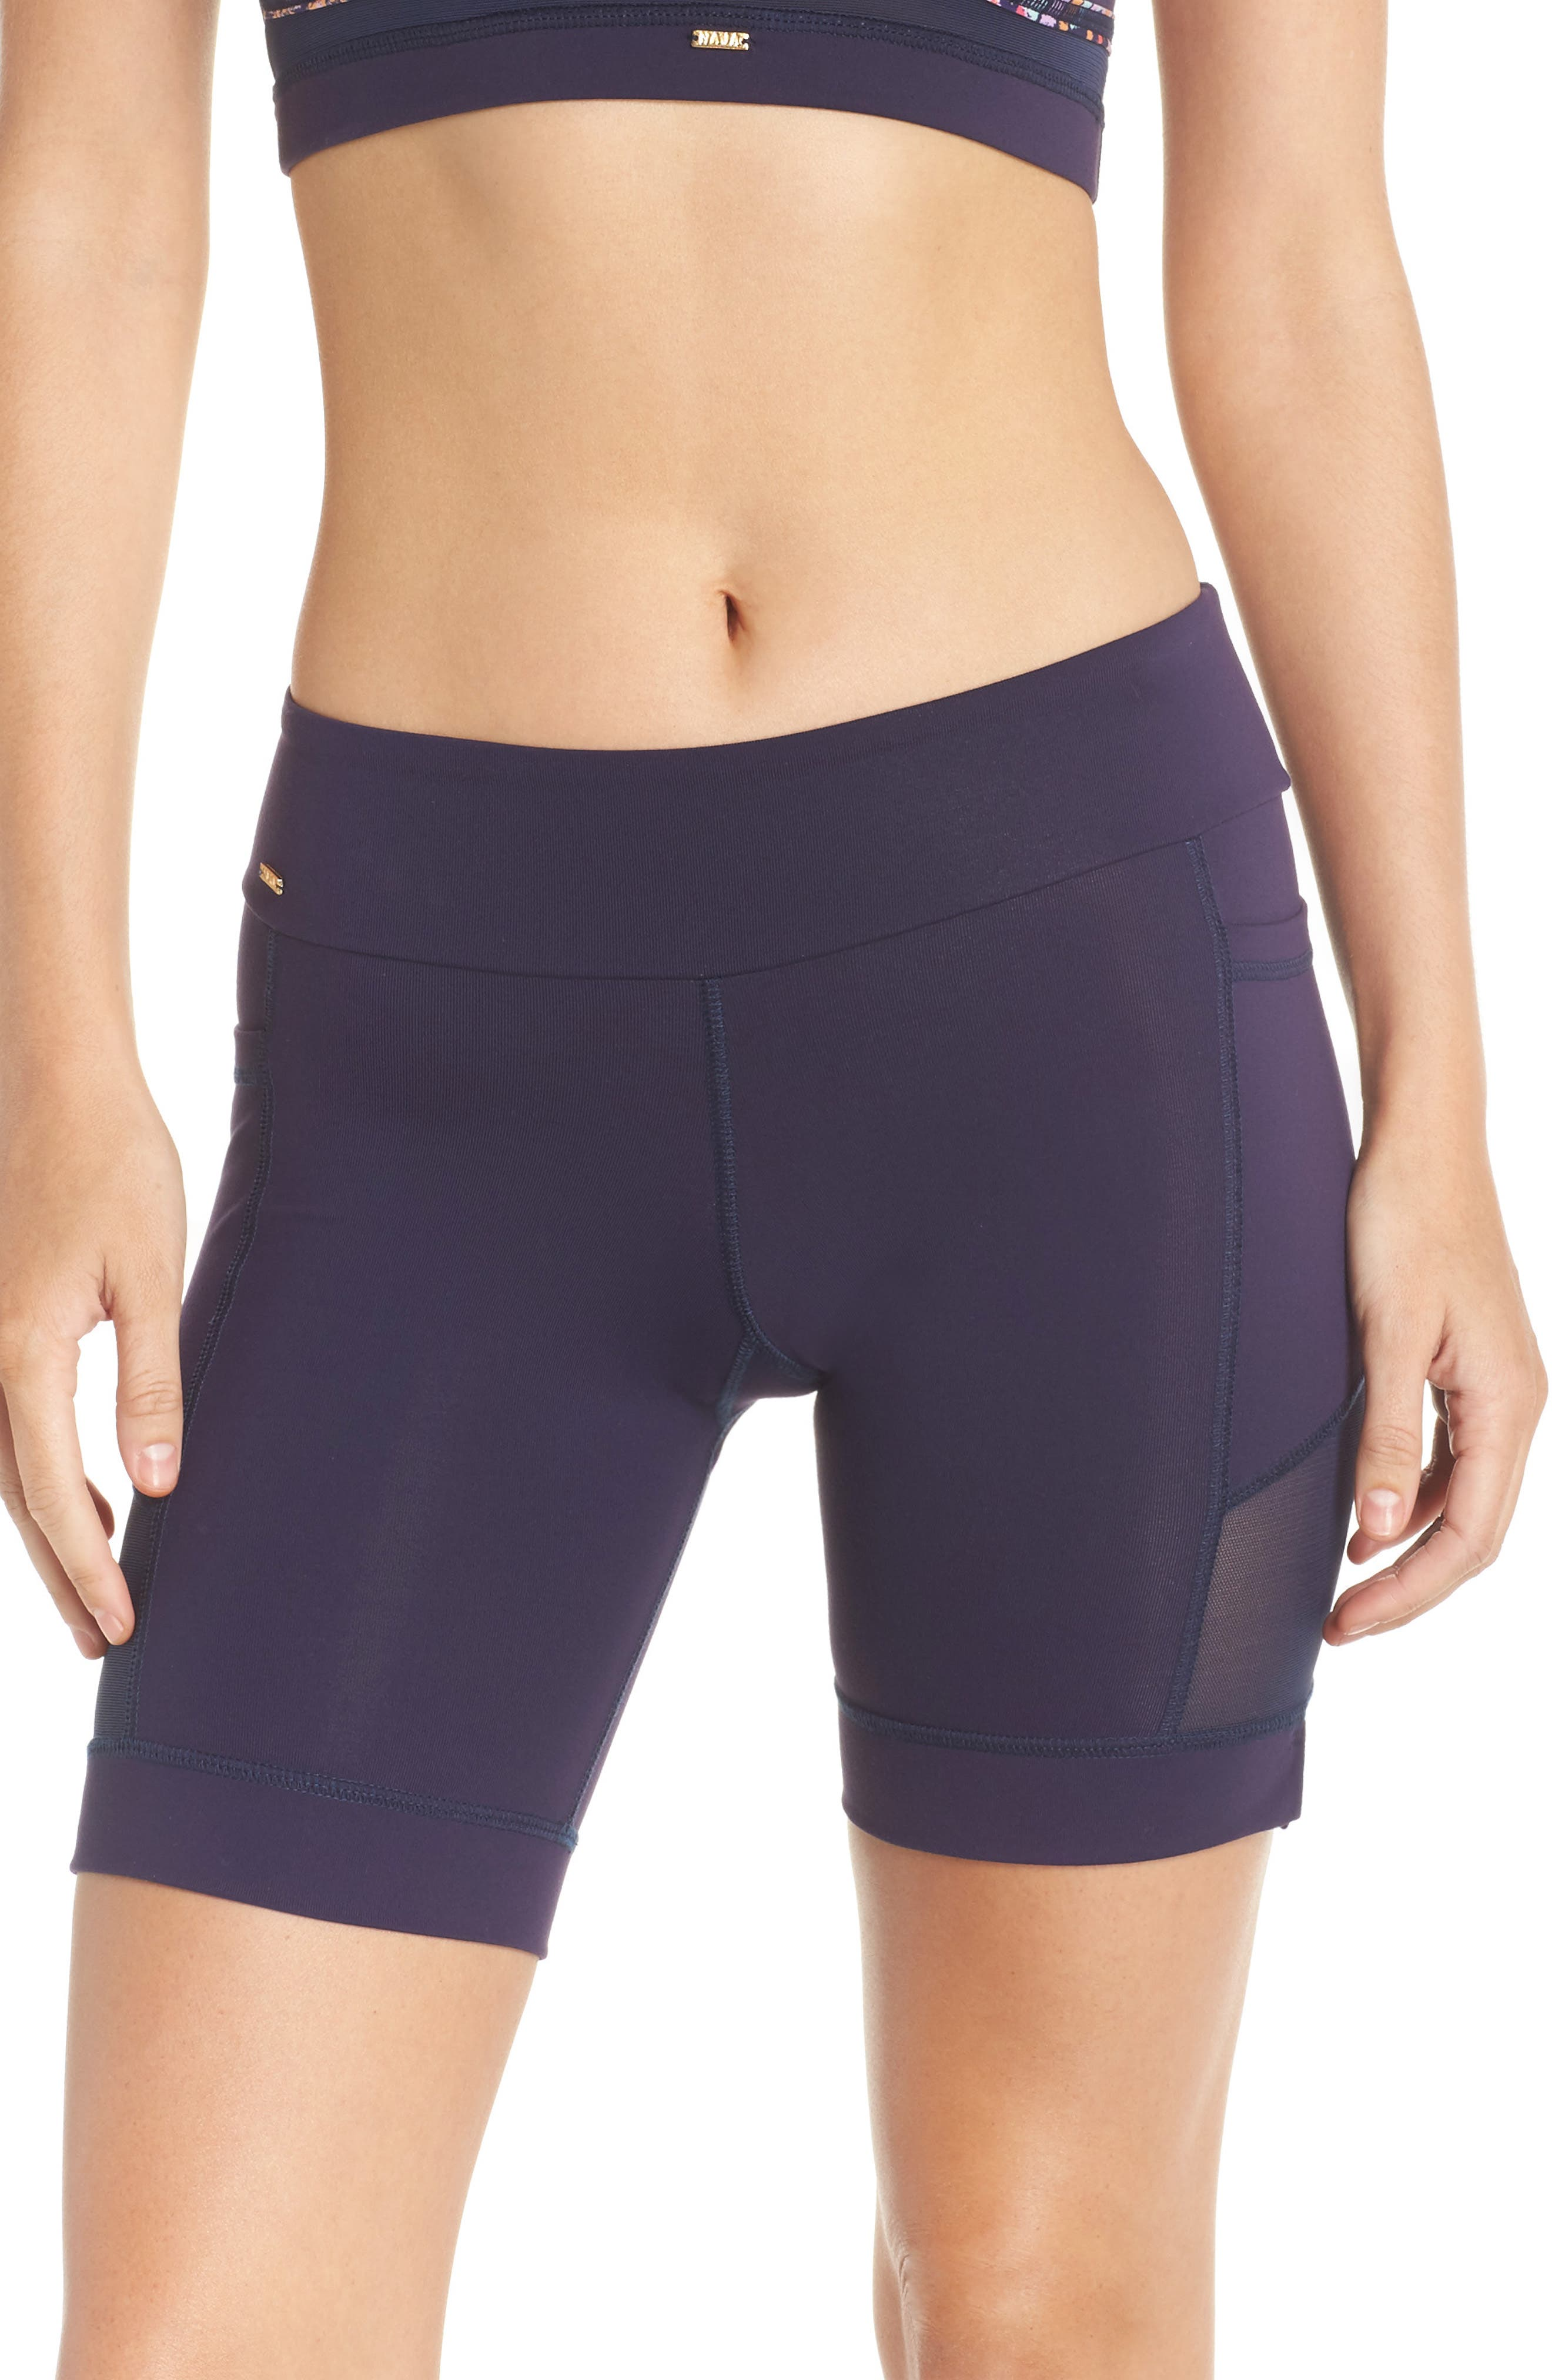 Alternate Image 1 Selected - Naja Nicole Active Shorts